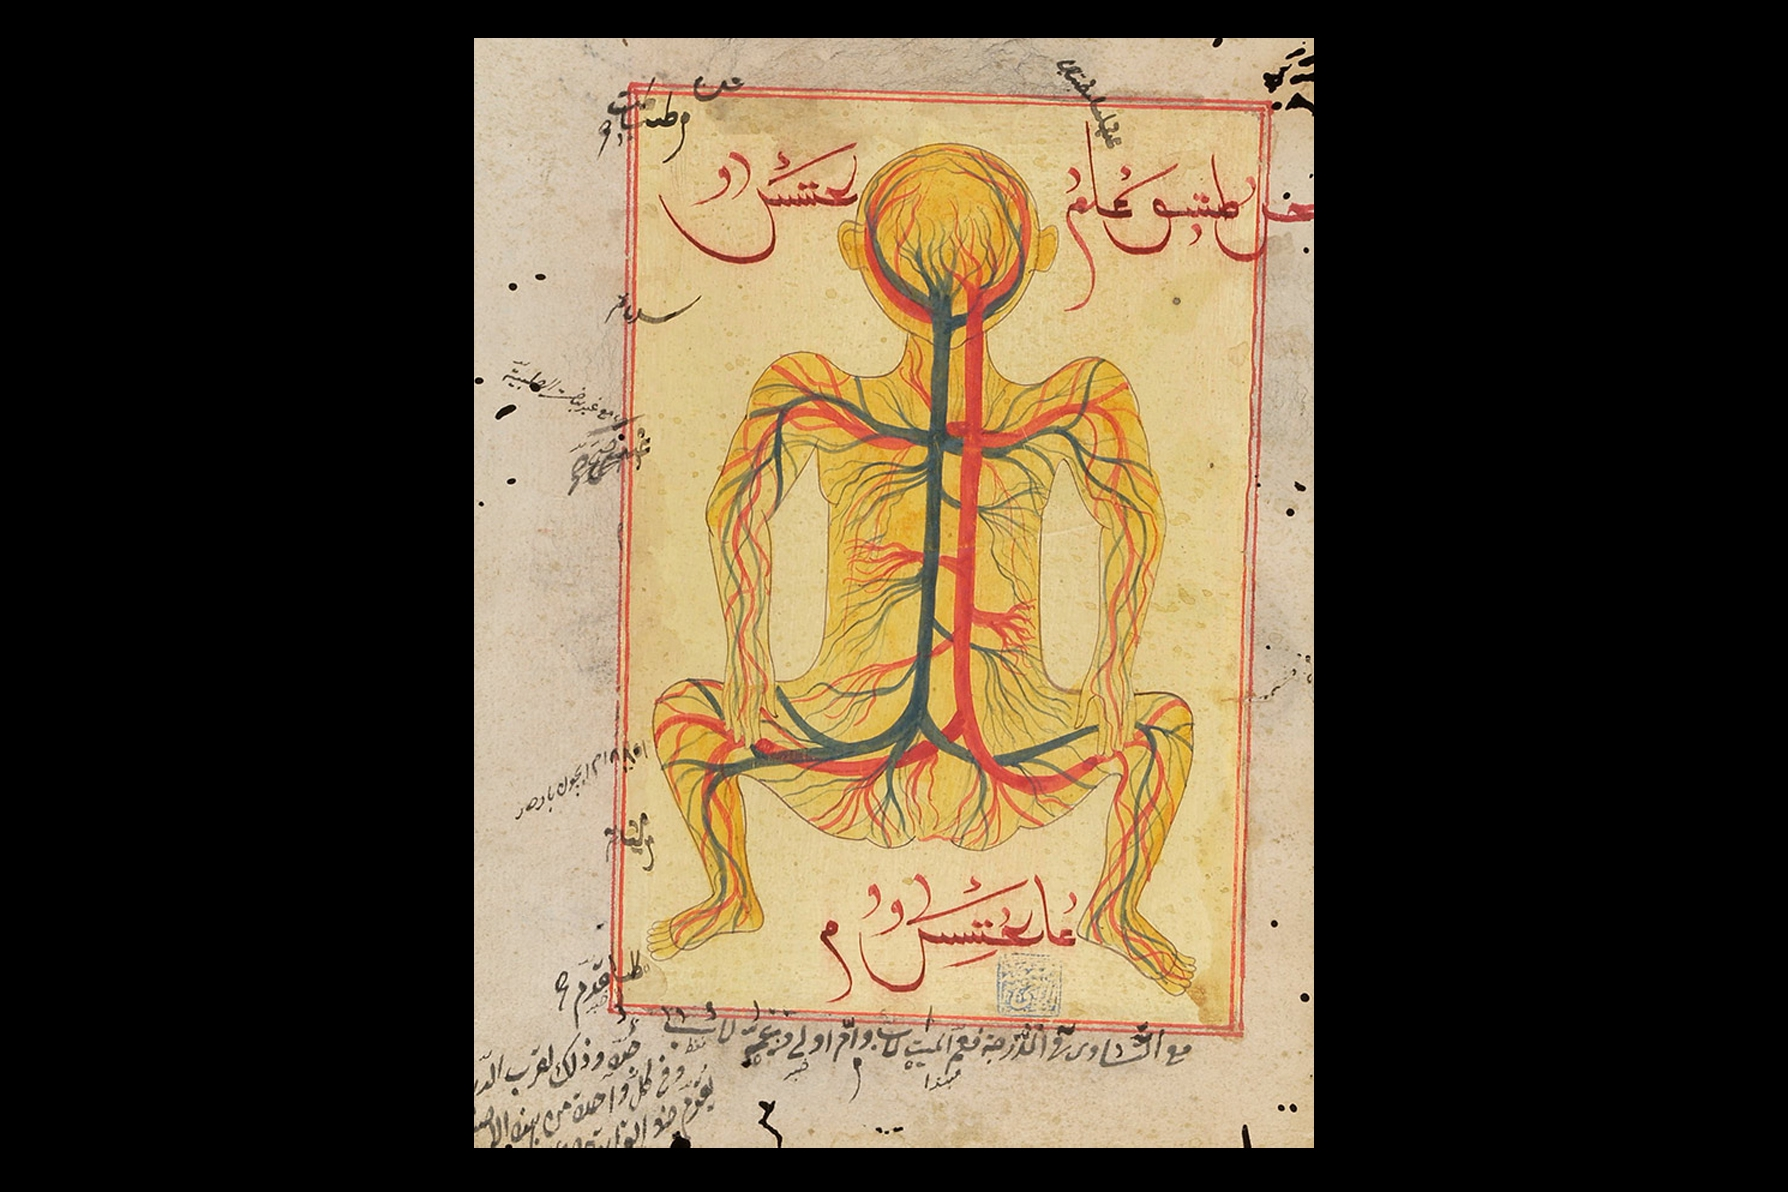 "A fake anatomical diagram with non-sensical, Arabic-like script, supposedly depicting an Islamic model of the veins and arteries of the body. Photo courtesy of the Wellcome Collection (from ""Forging Islamic science"" by Nir Shafir)"